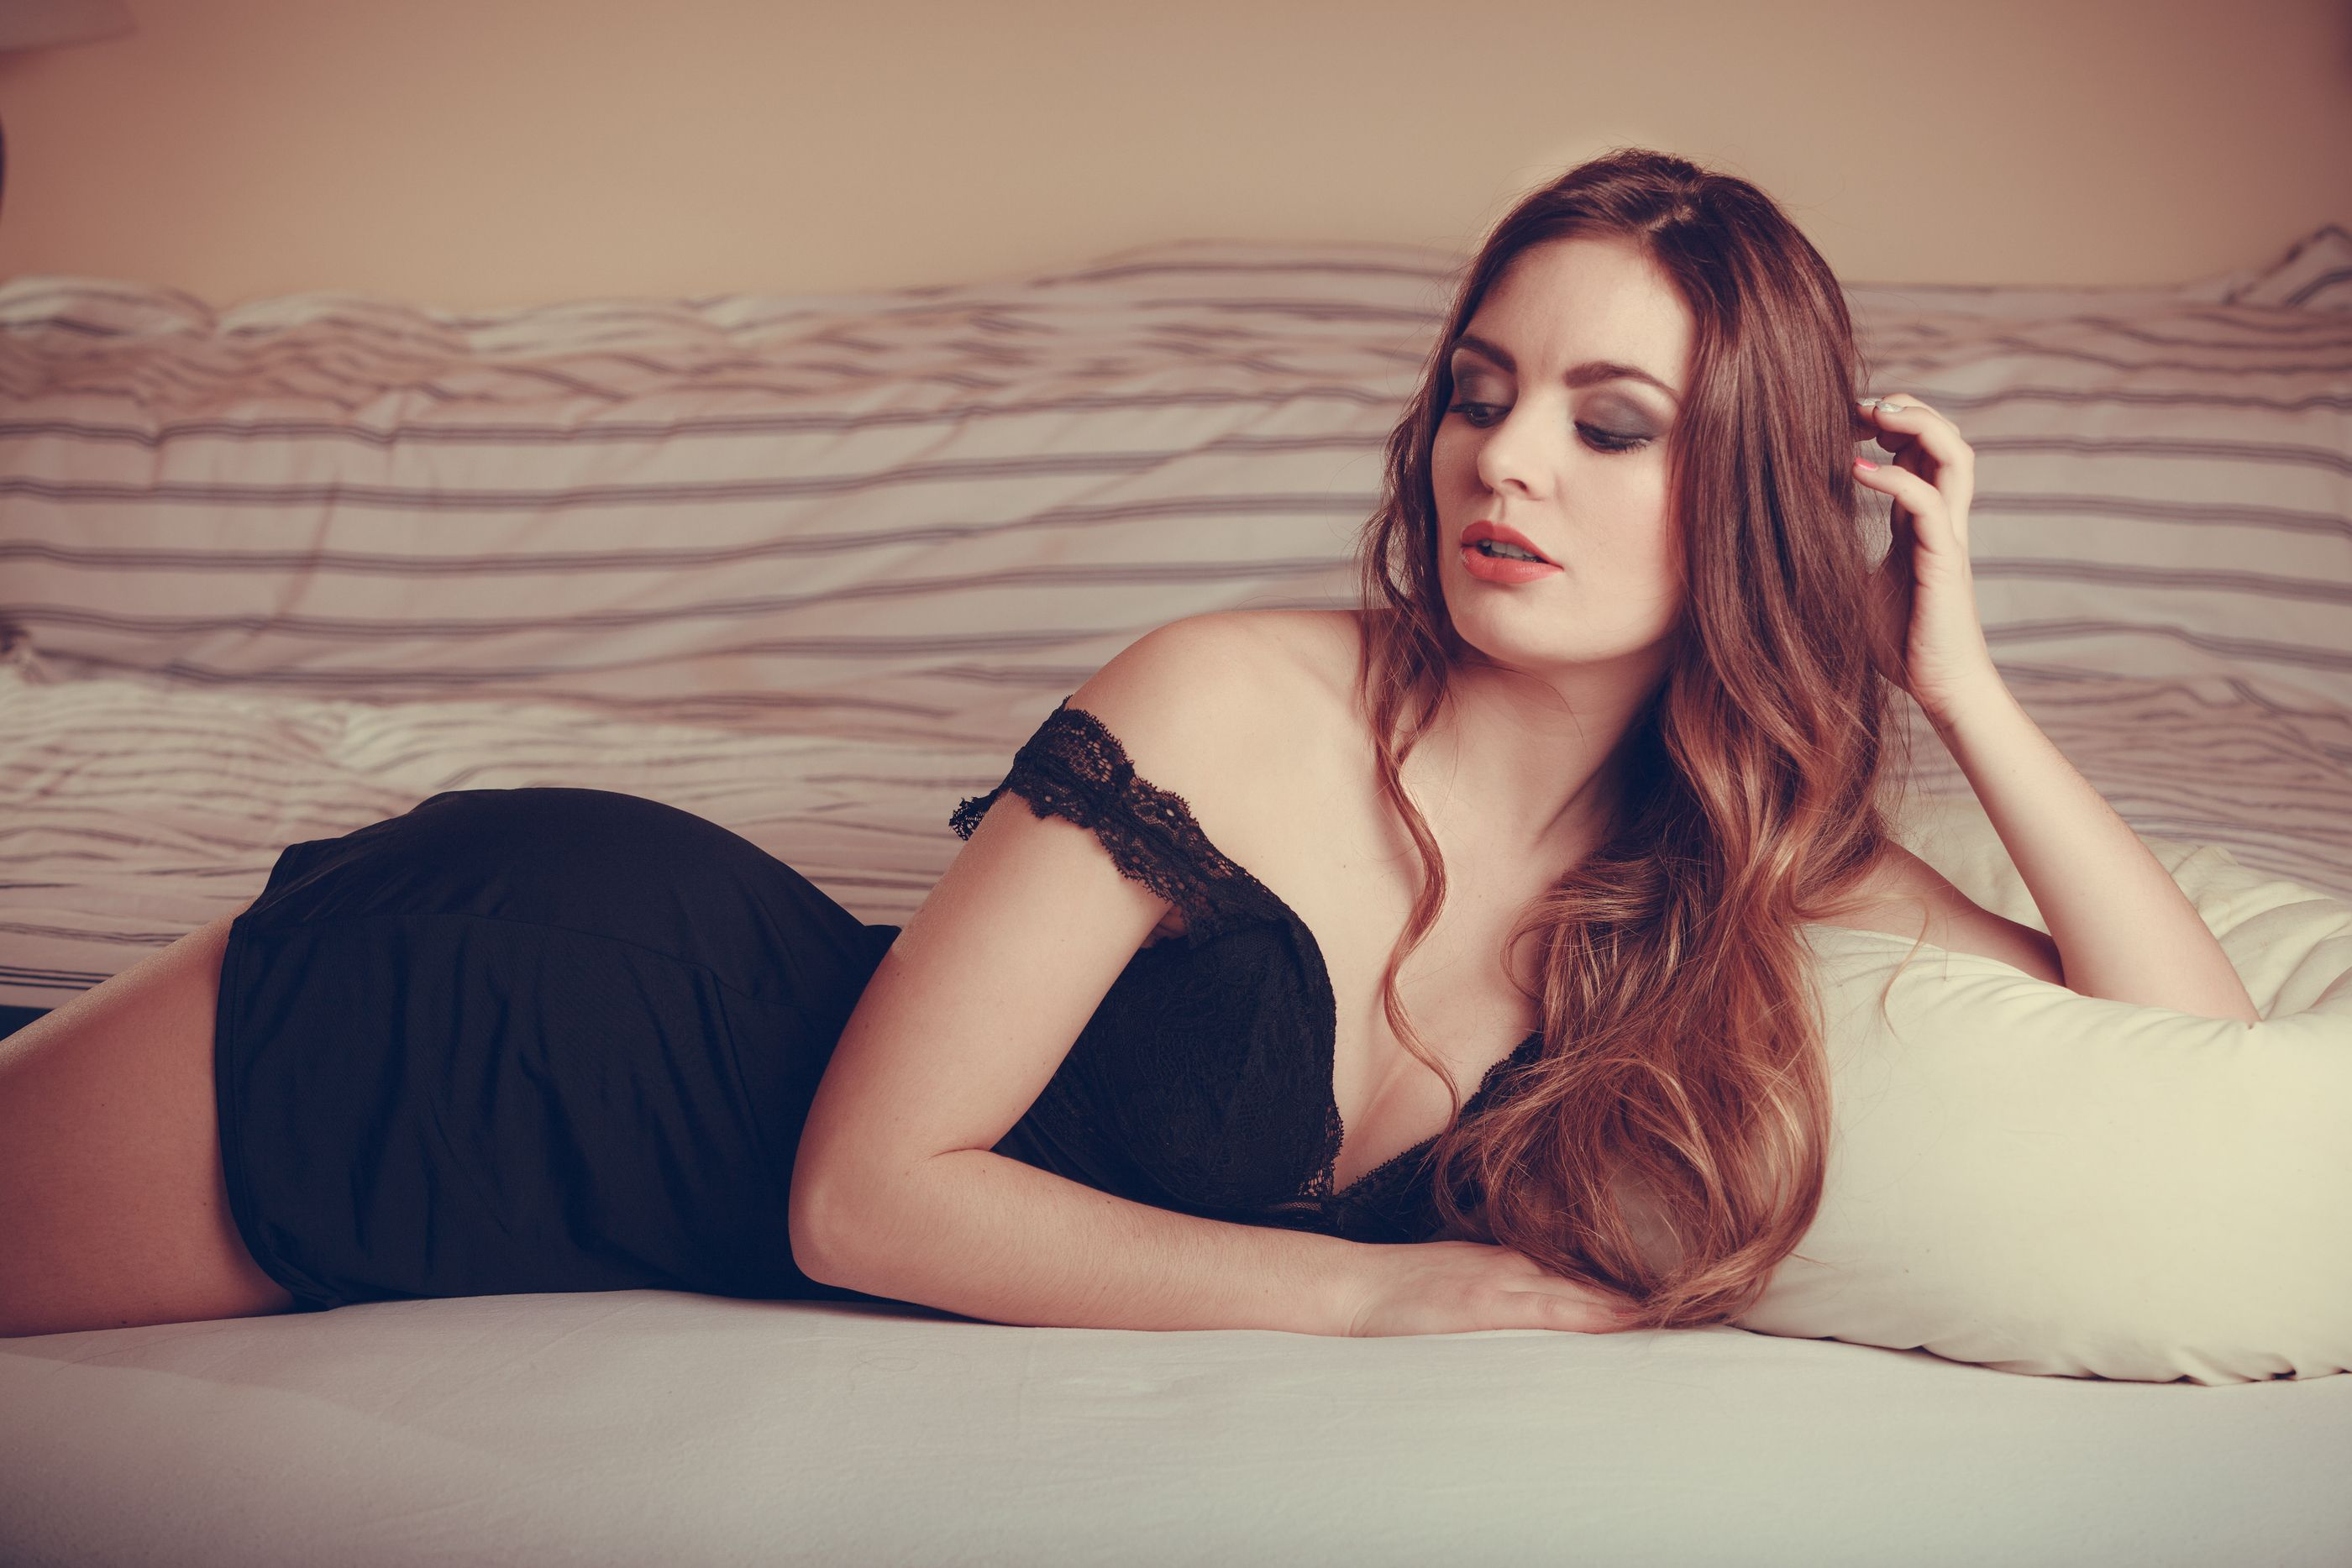 10 Secret Erogenous Zones She's Dying For You to Touch